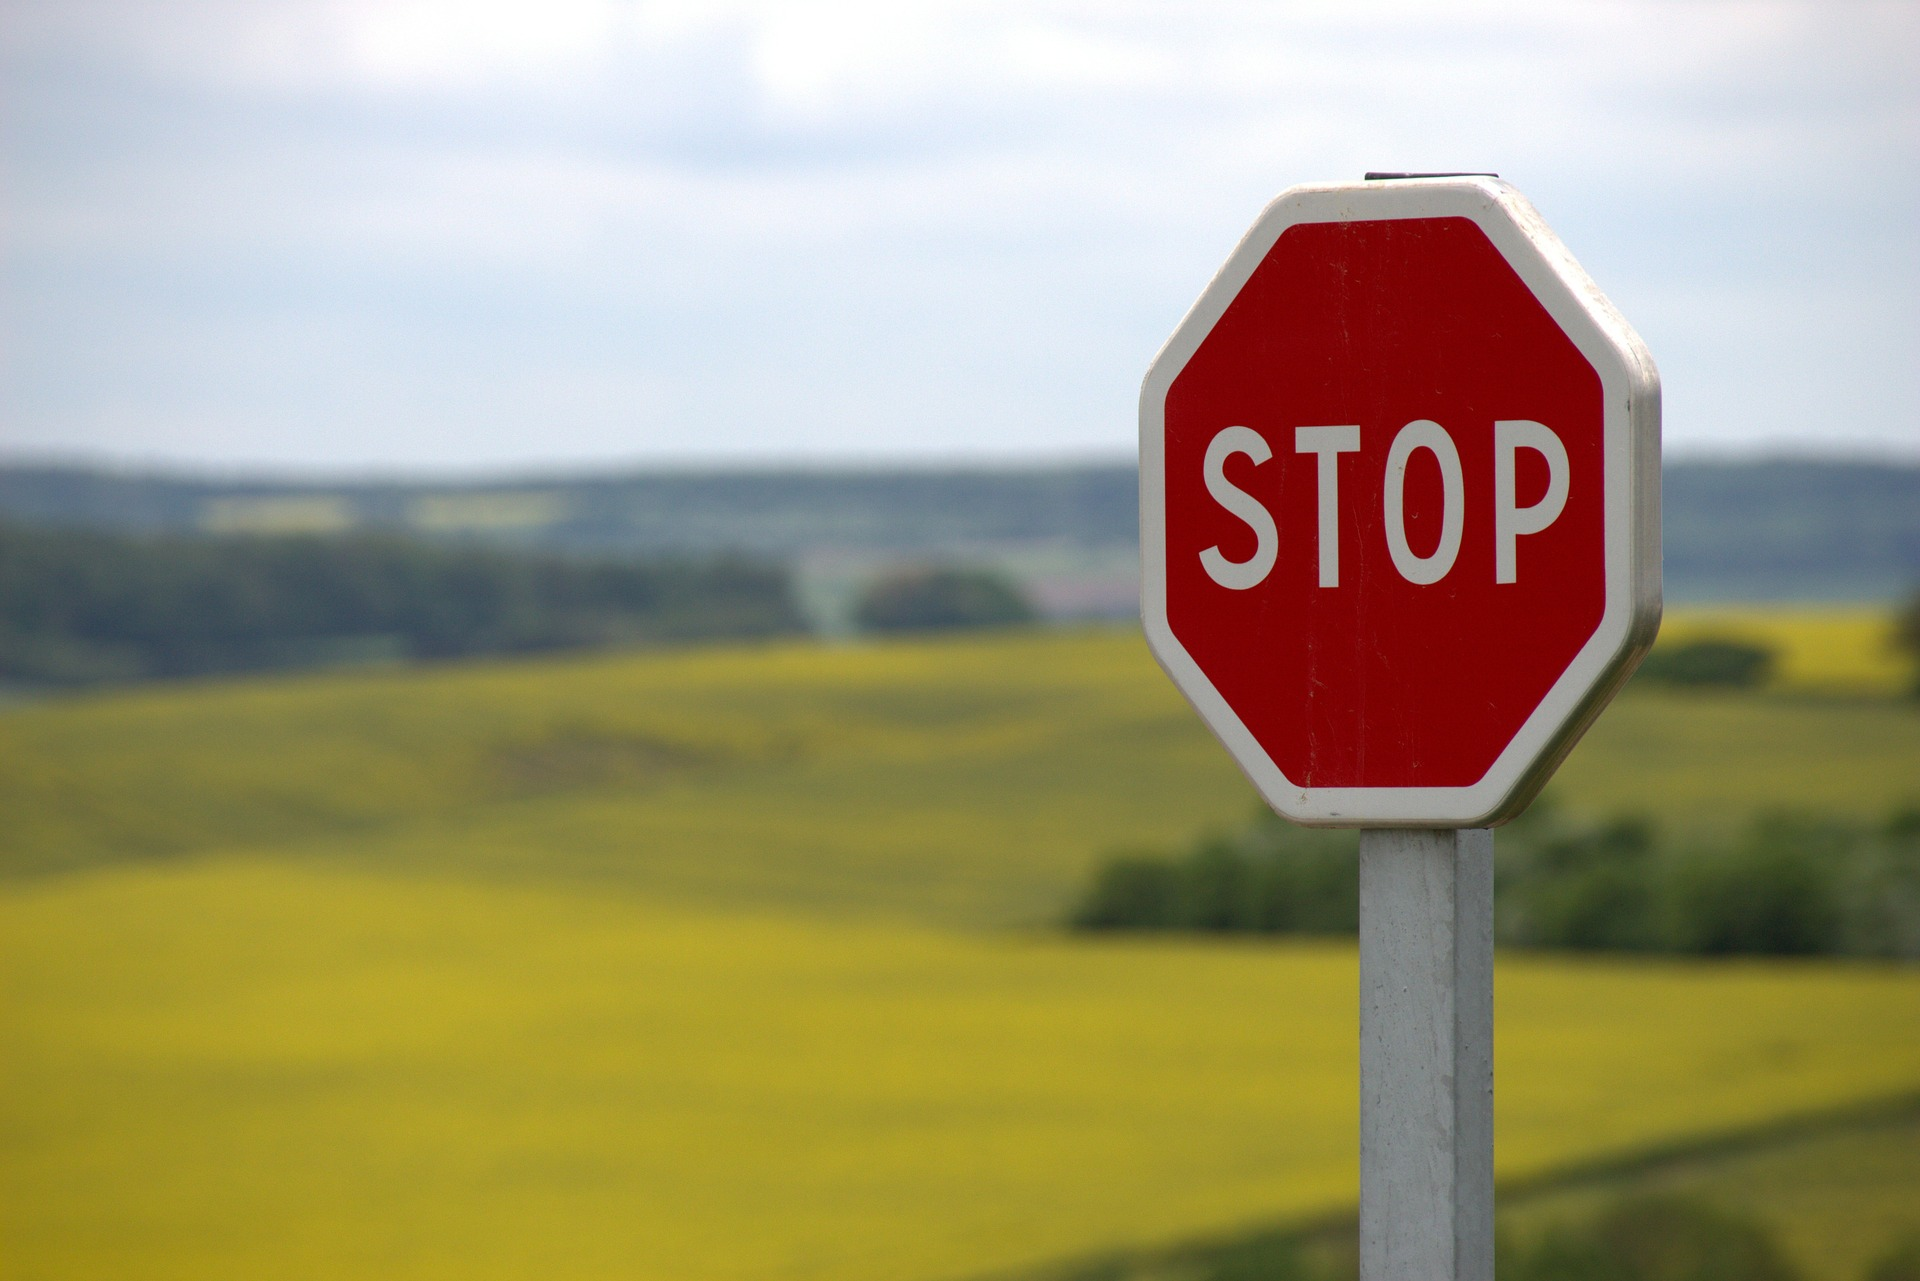 Stop sign warning people about potential pitfalls.